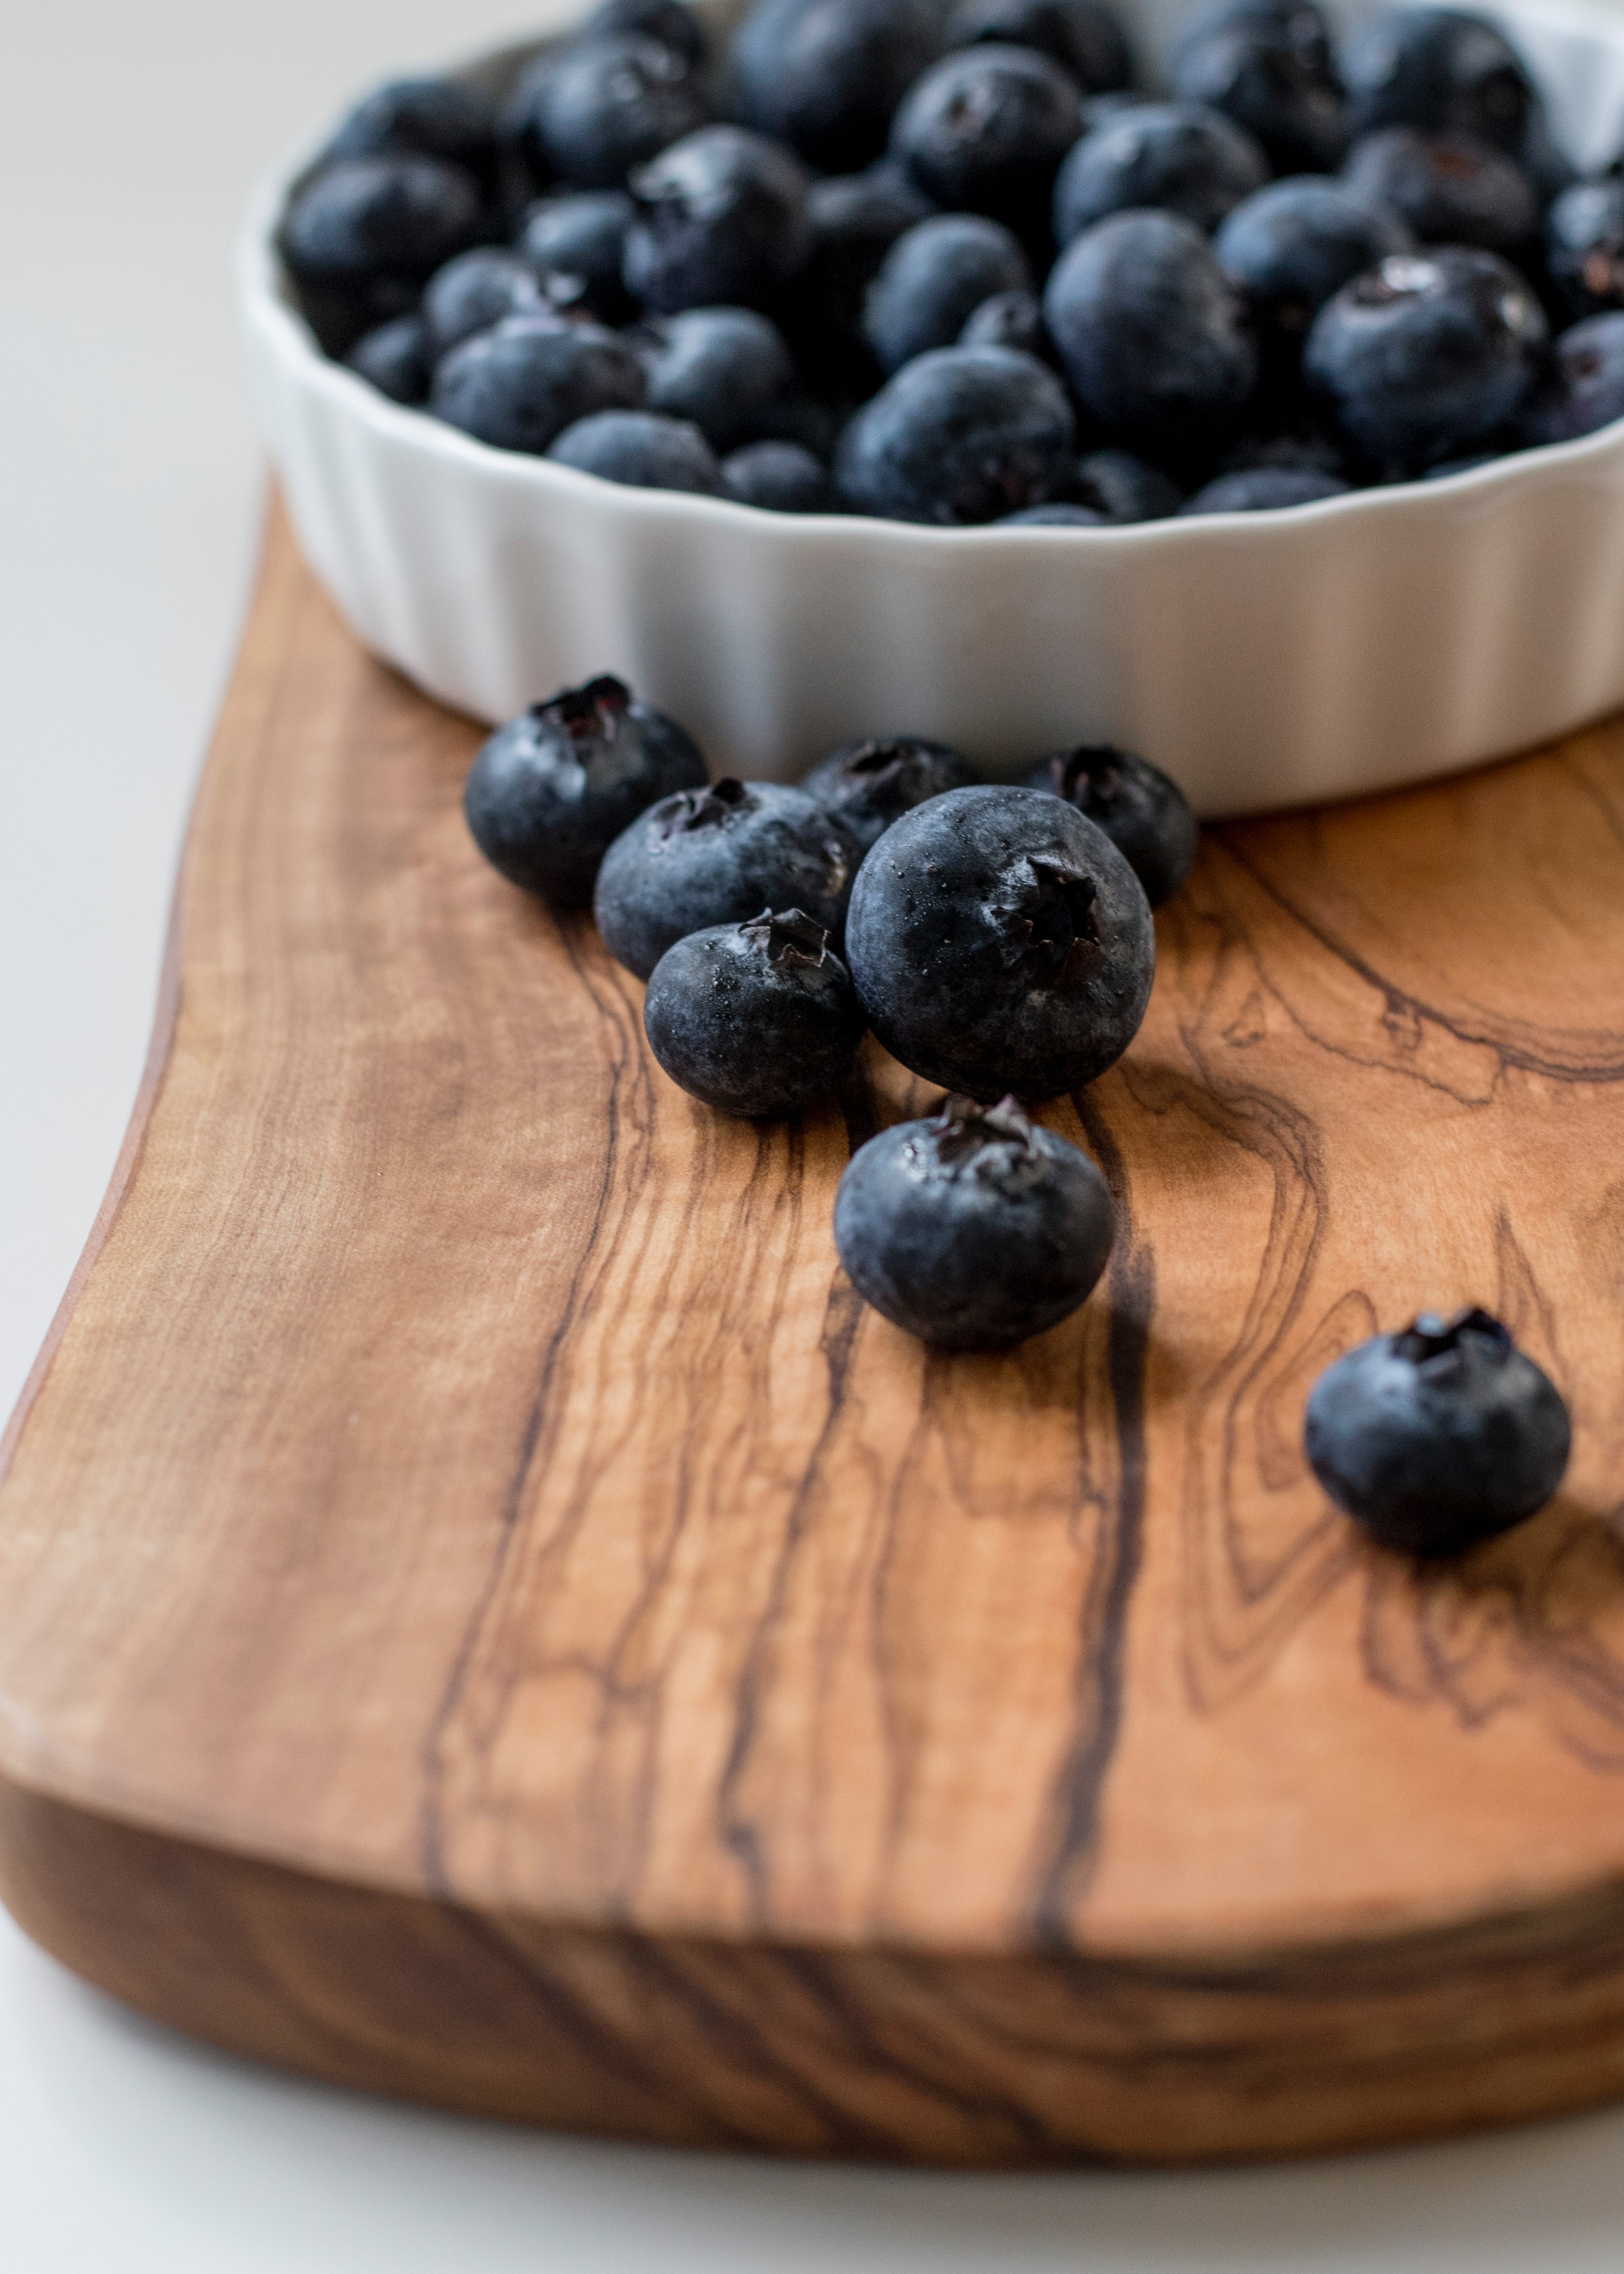 148359 download wallpaper Food, Fruit, Wood, Wooden, Bilberries, Berries screensavers and pictures for free